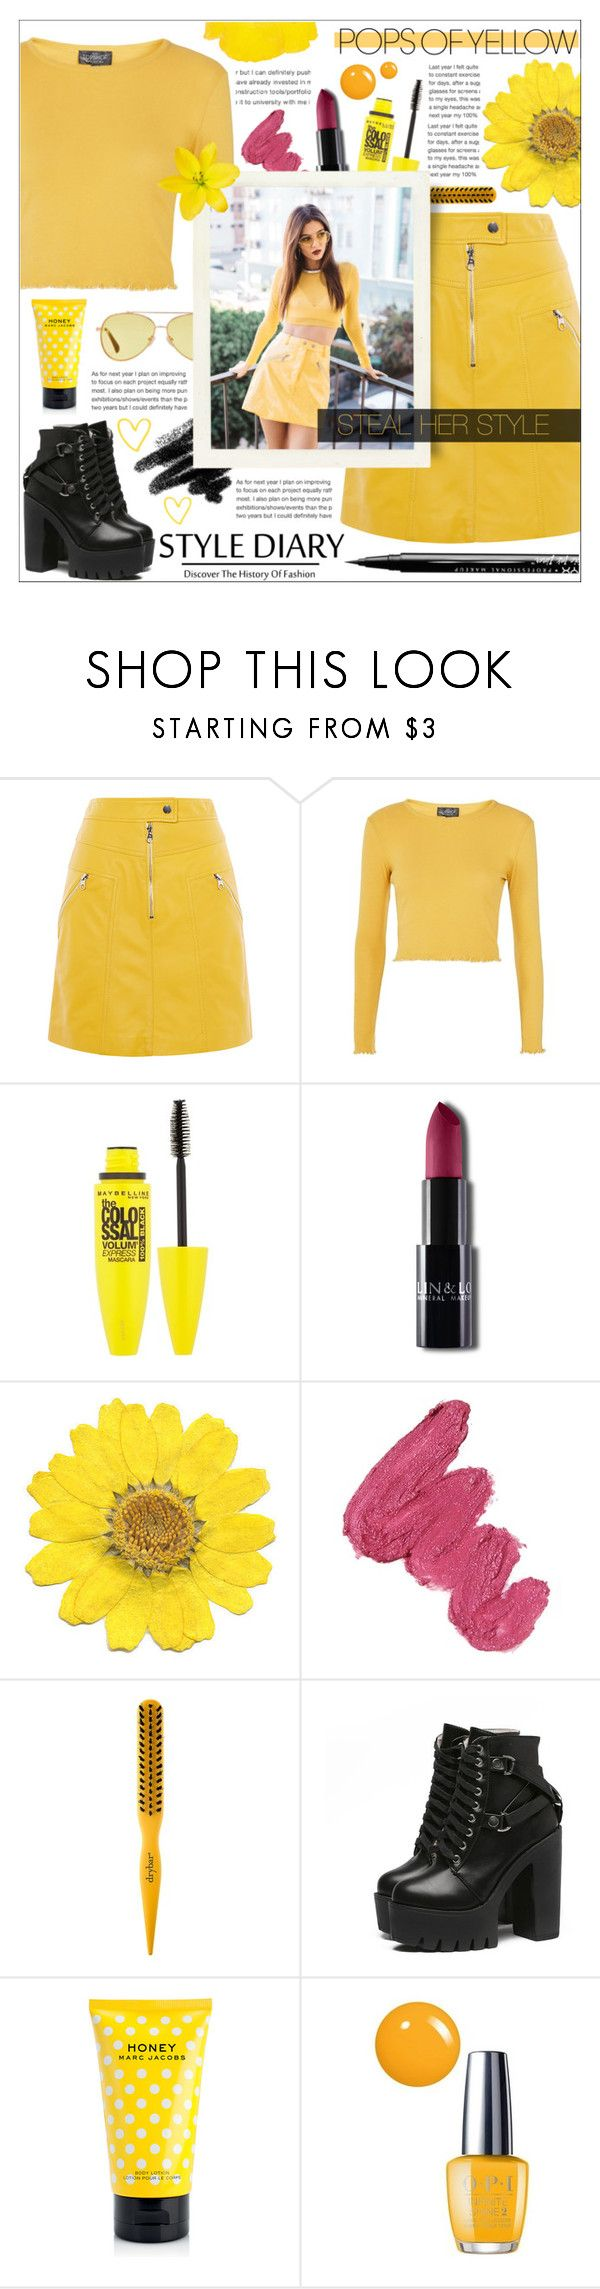 """""""Pops of Yellow // Steal Victoria's Style"""" by mariiaax ❤ liked on Polyvore featuring Karen Millen, Topshop, Maybelline, Mermaid Salon, Drybar, Marc Jacobs, OPI and NYX"""